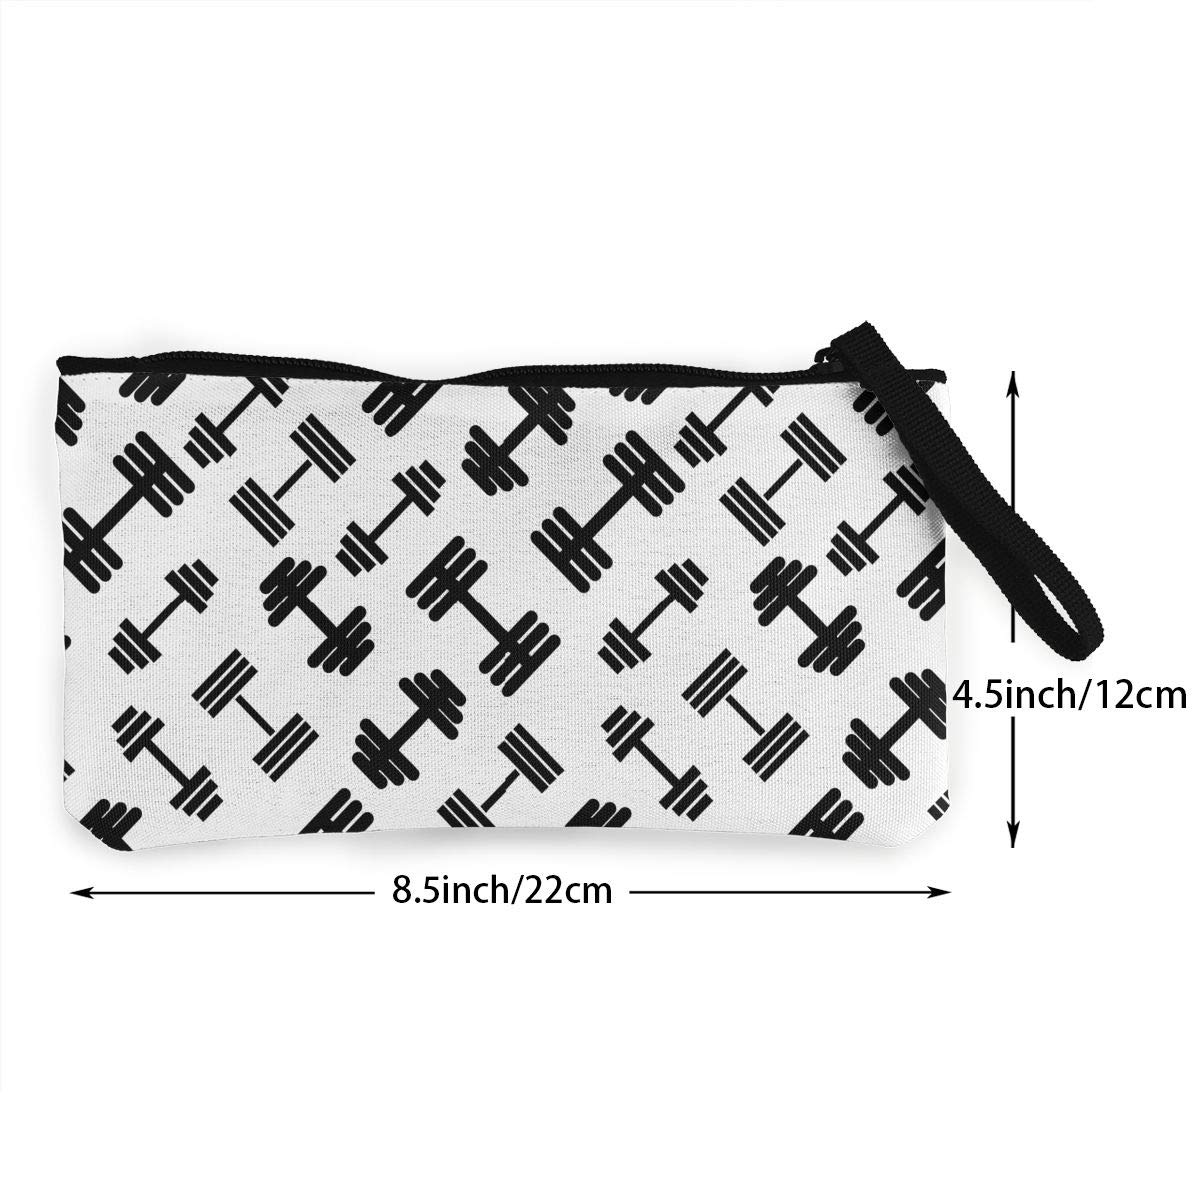 Make Up Bag DH14hjsdDEE Barbells Dumbbell Fitness Equipment Zipper Canvas Coin Purse Wallet Cellphone Bag With Handle